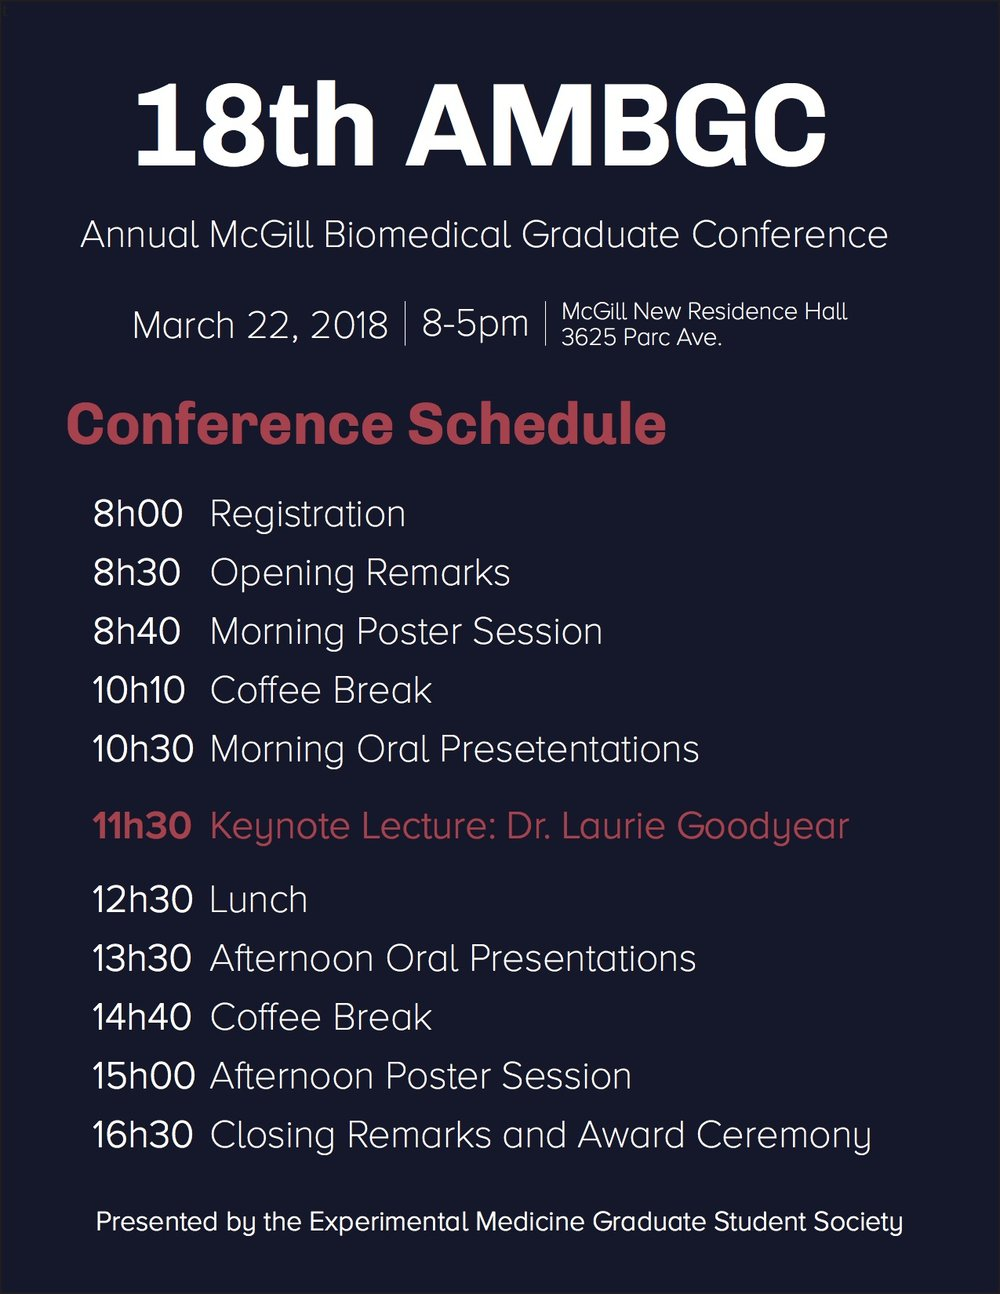 AMBGC_conference_schedule.jpg